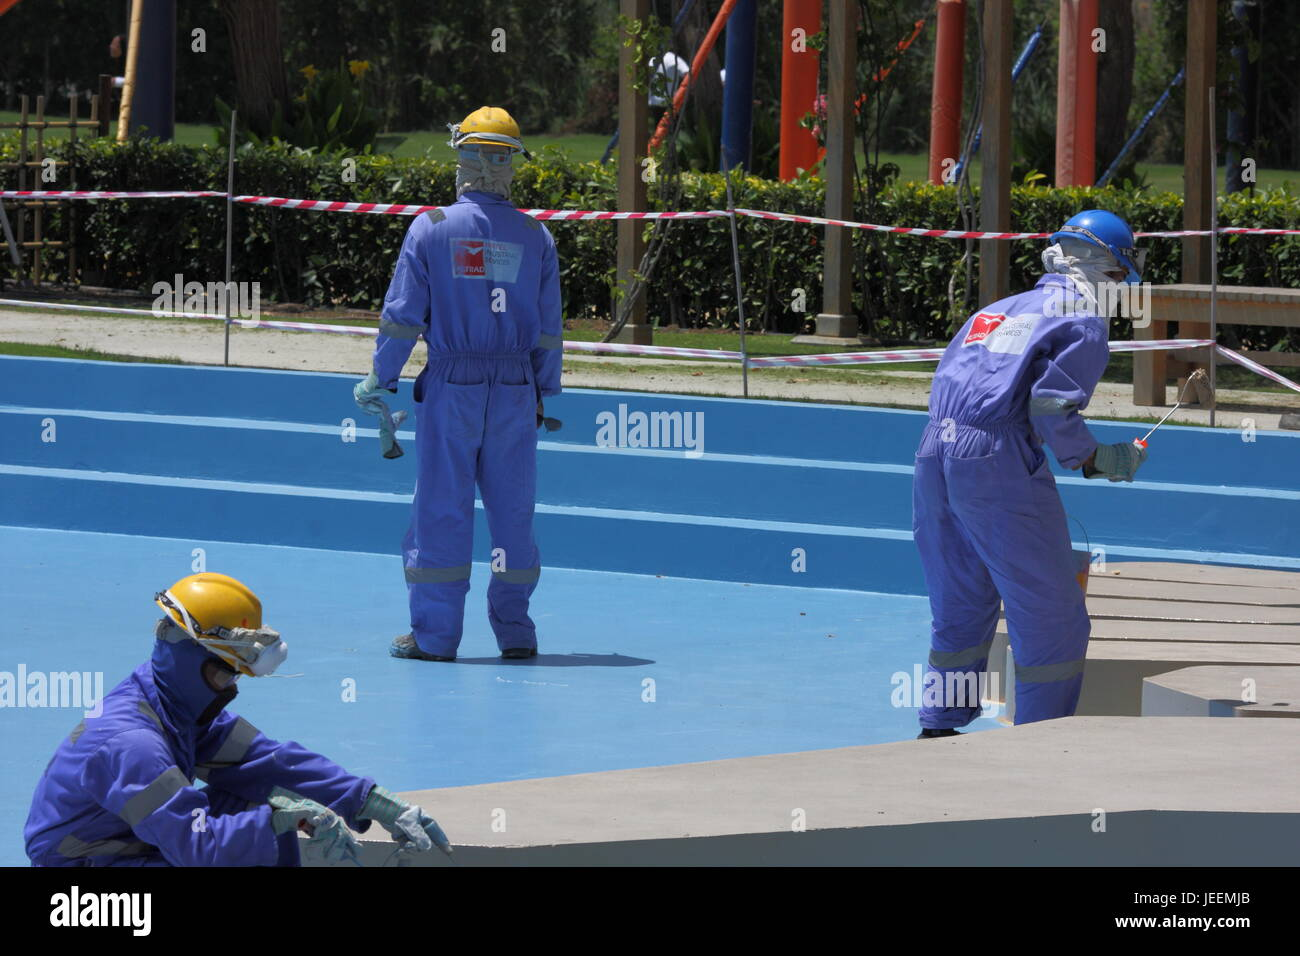 Indian migrant workers in hard hats and boiler suits, Al Areen Wildlife Park, Kingdom of Bahrain Stock Photo